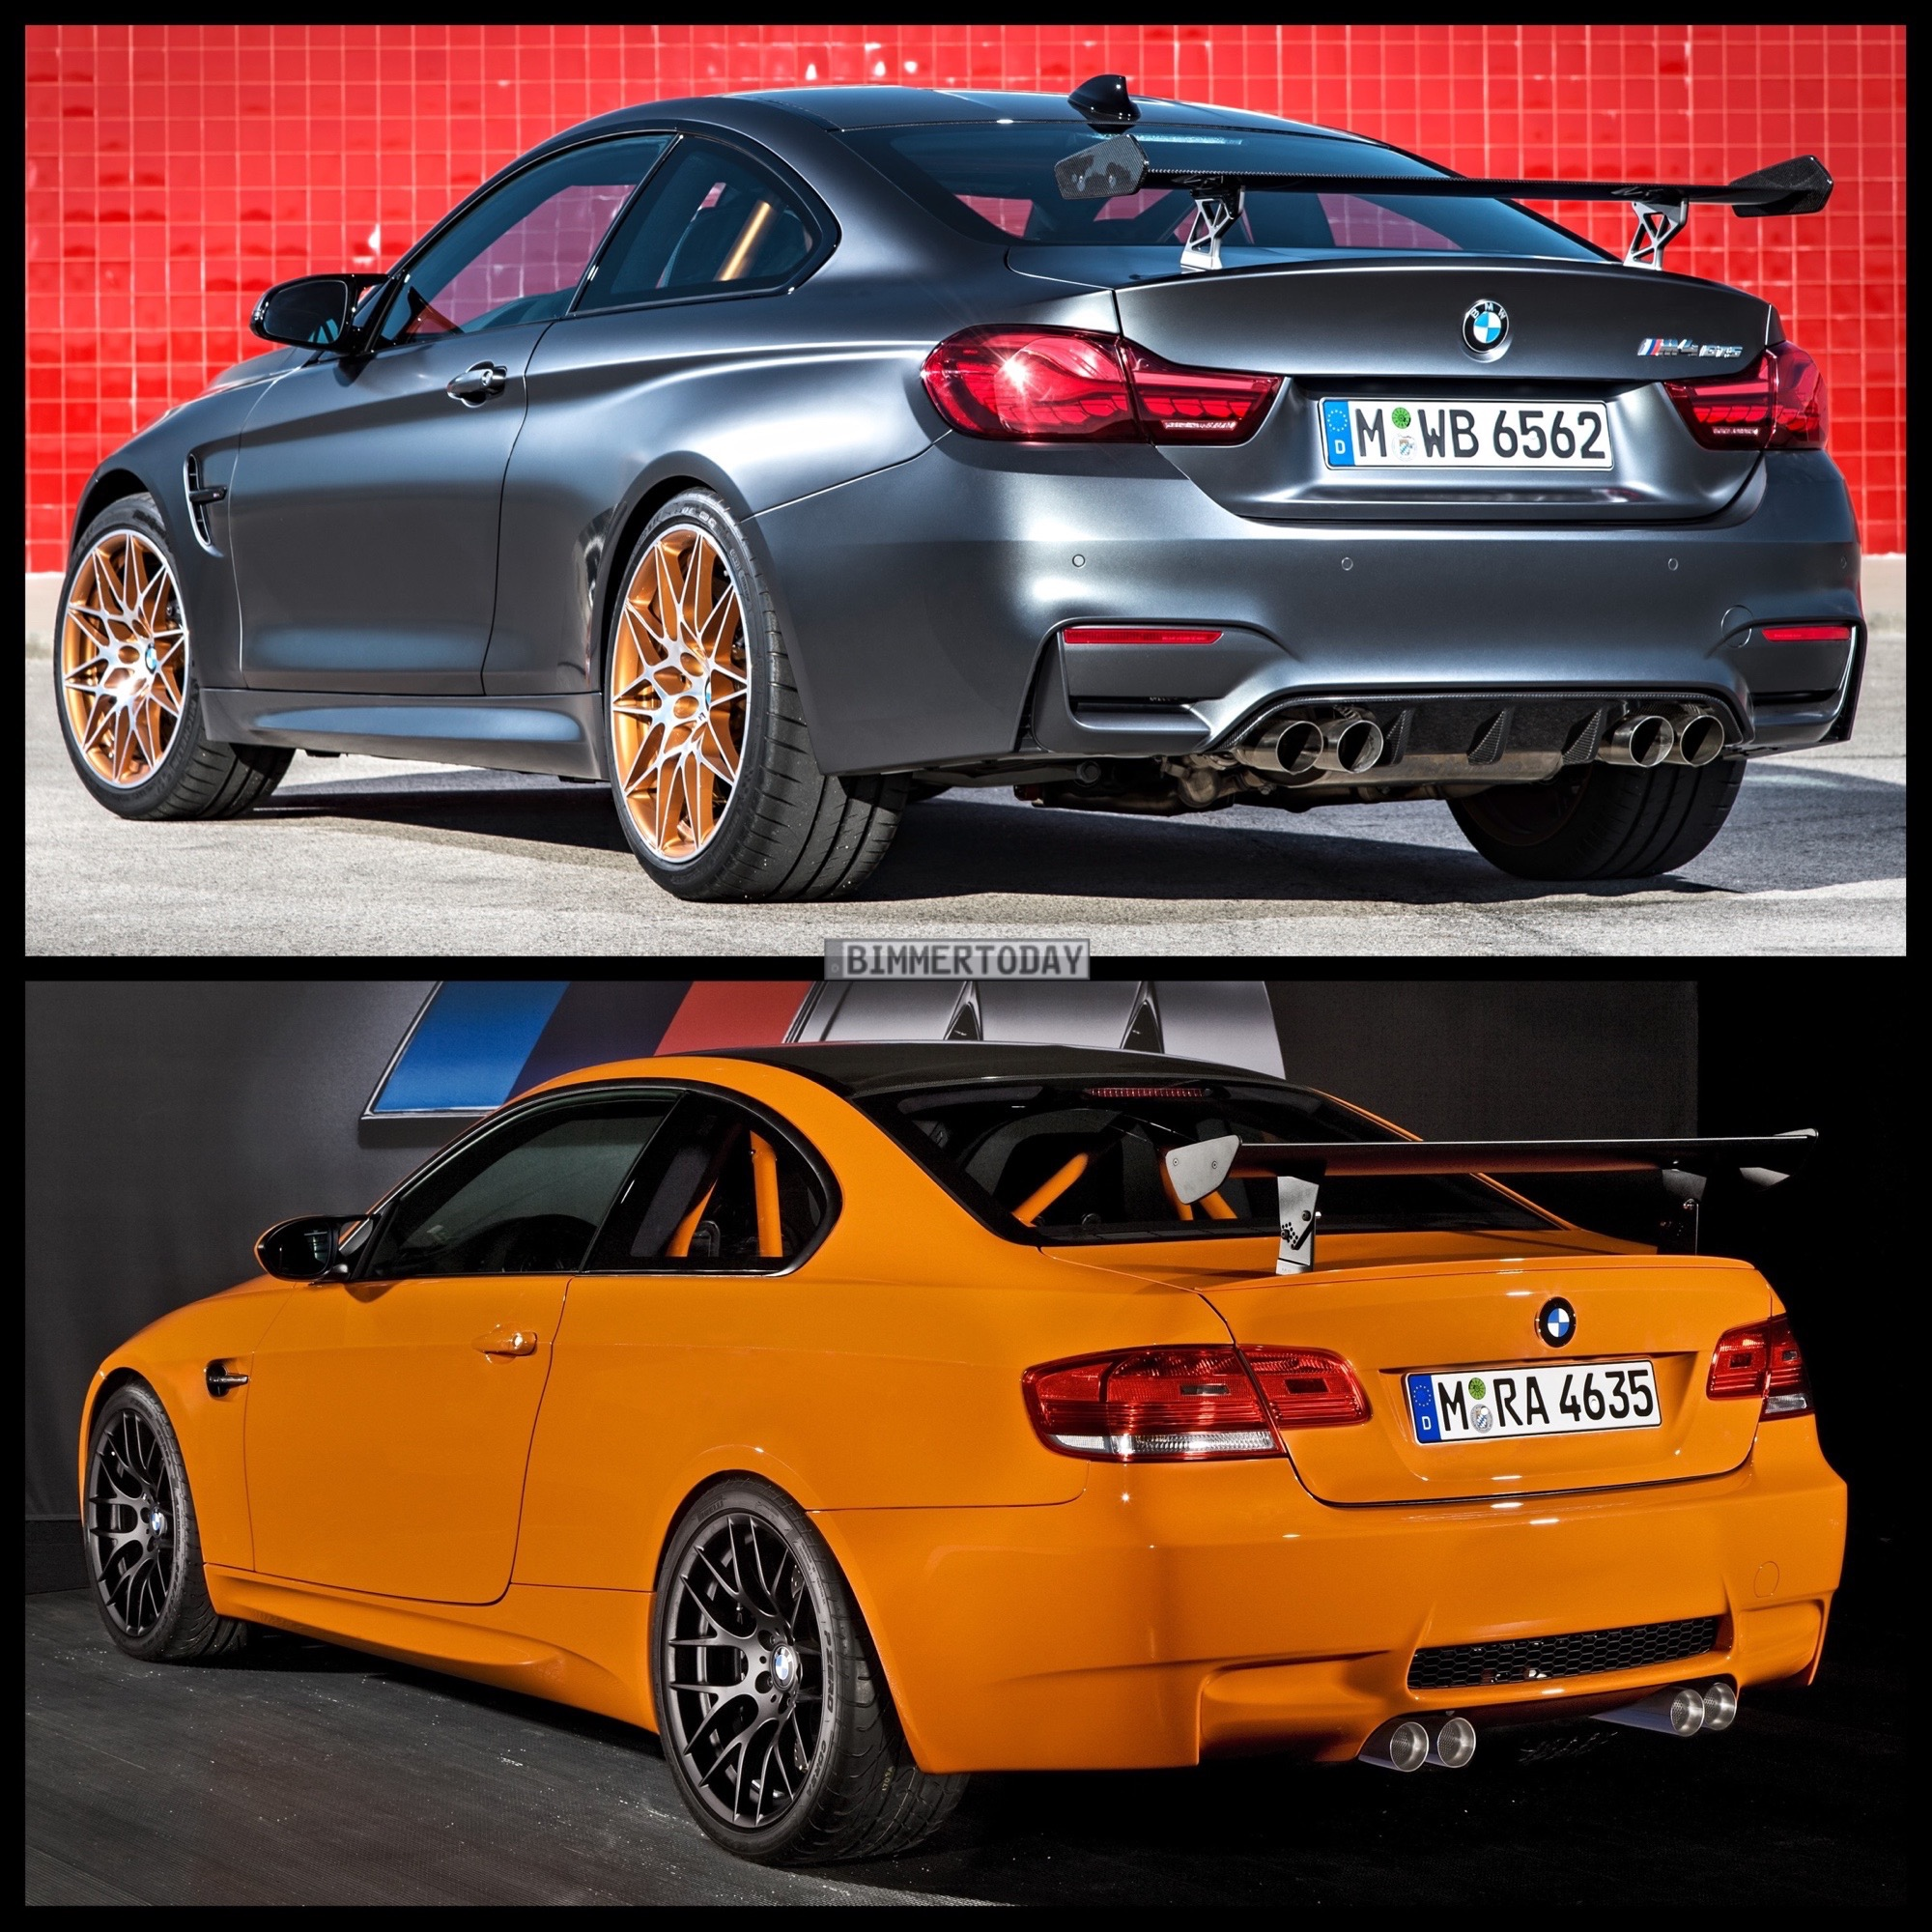 bmw m4 gts vs bmw m3 gts photo comparison. Black Bedroom Furniture Sets. Home Design Ideas